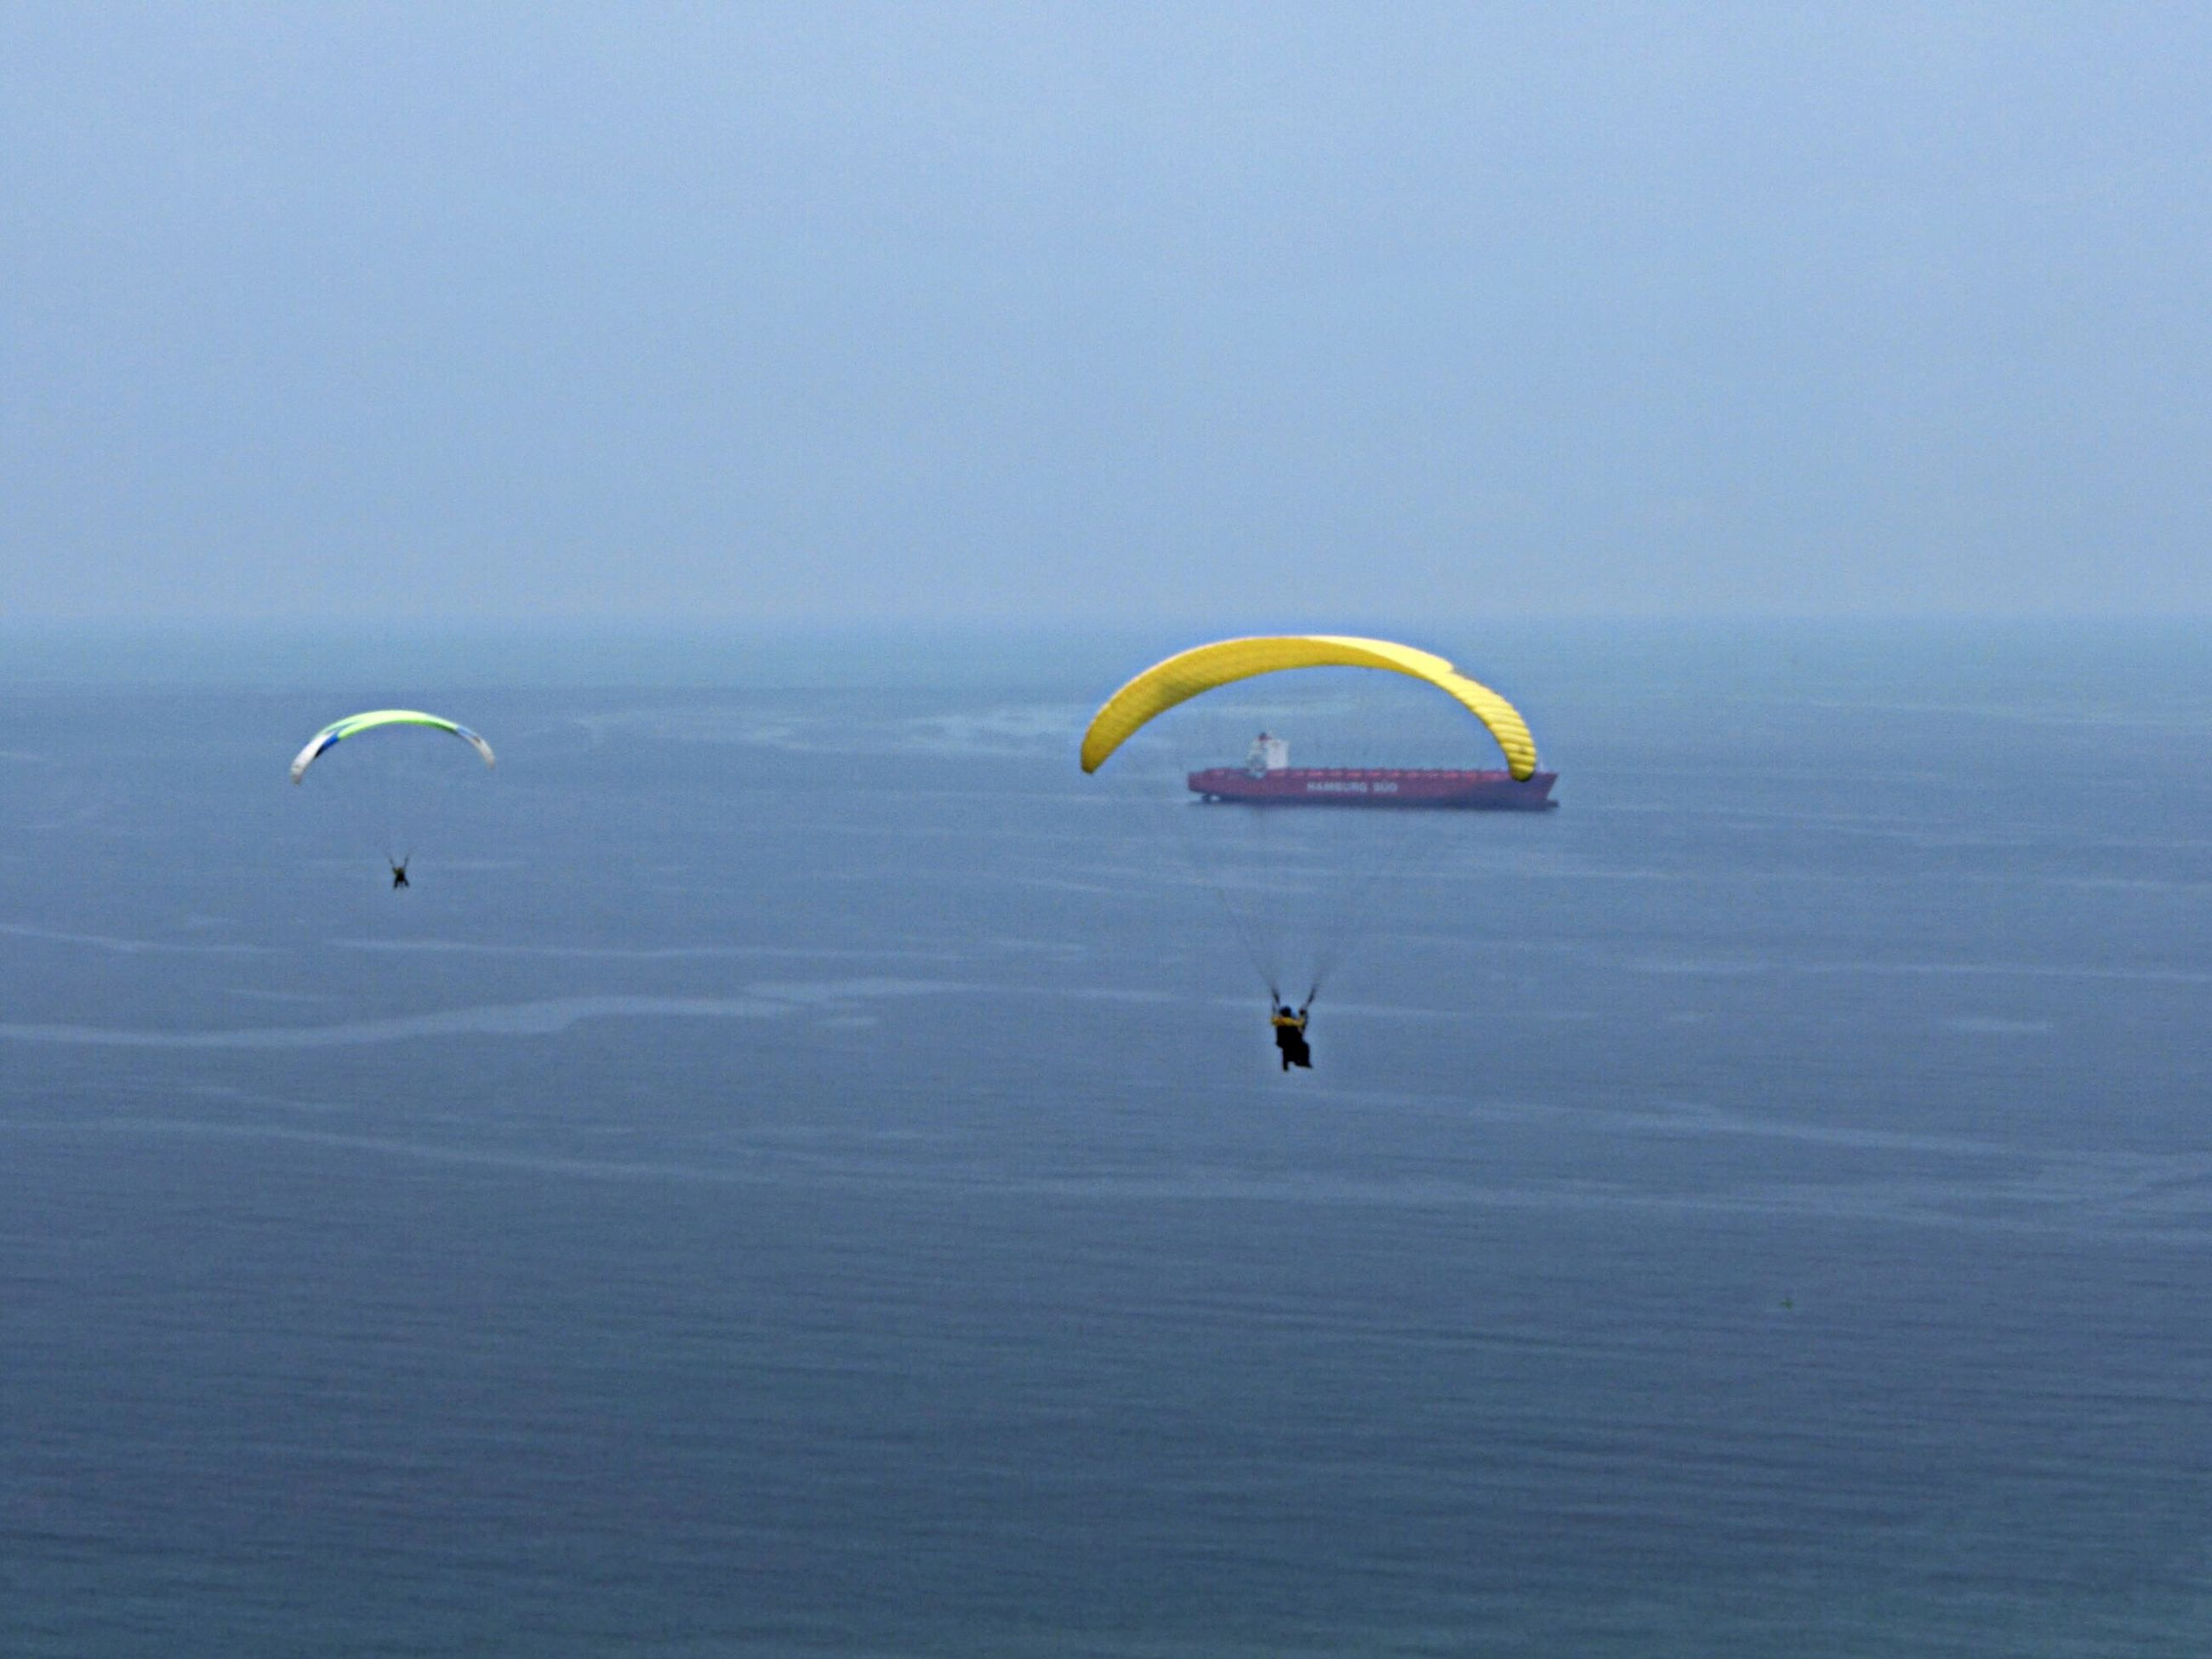 extreme sports, parachute, adventure, sport, sea, paragliding, mid-air, leisure activity, flying, water, waterfront, tranquility, scenics, tranquil scene, copy space, lifestyles, unrecognizable person, horizon over water